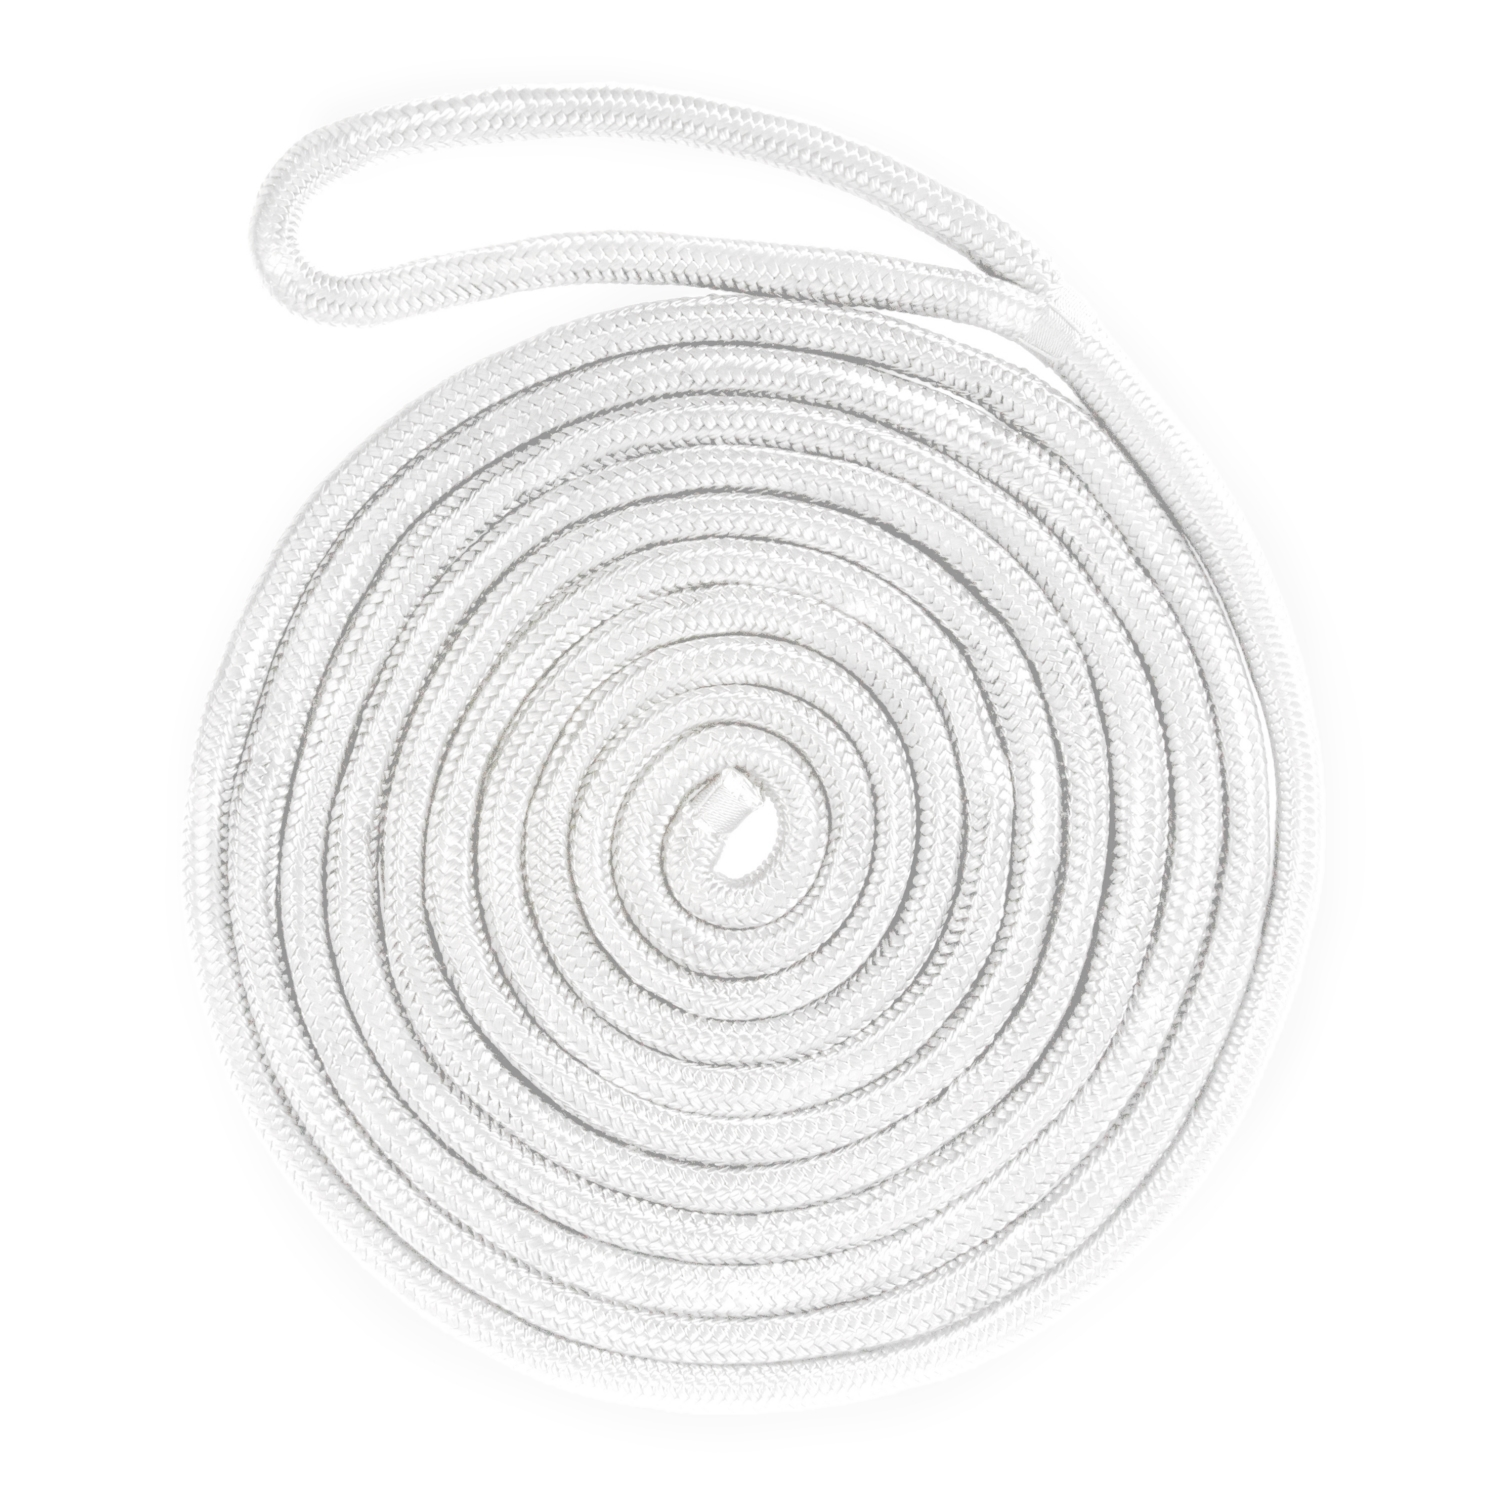 KIMPEX Double Braided Dock Line White #748531 by Kimpex